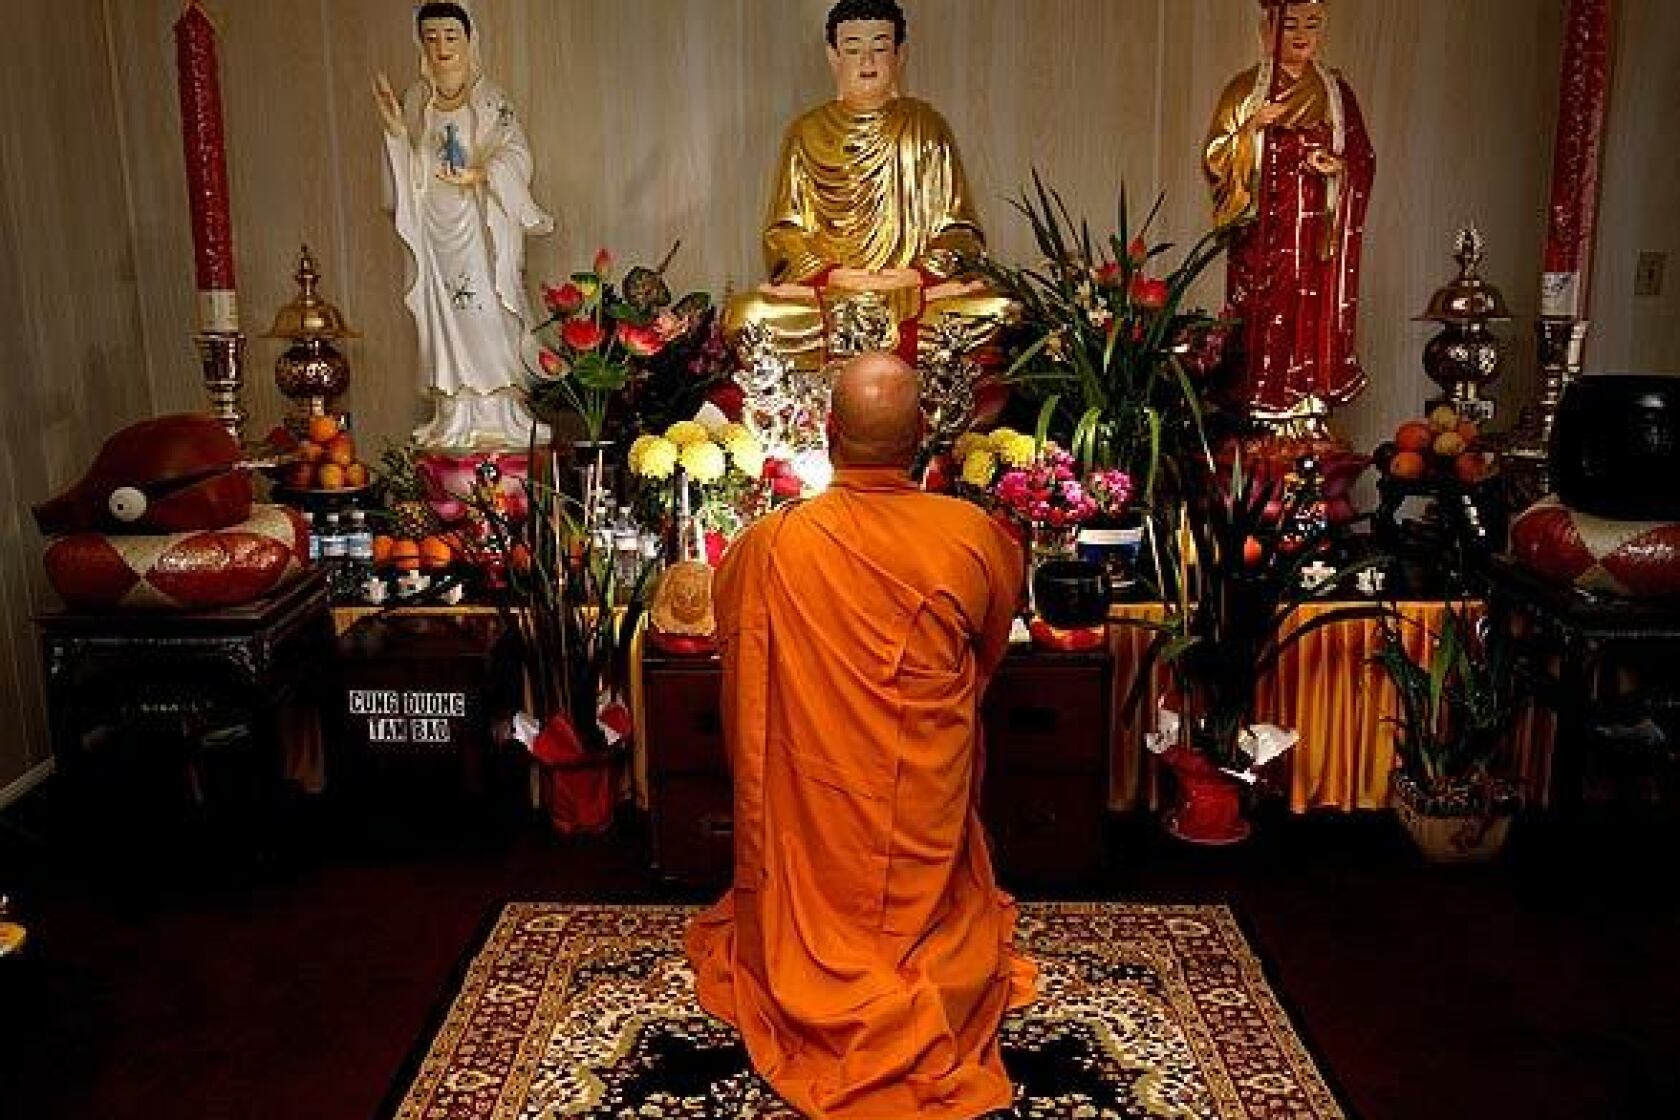 Buddhist Meditation Center rises in Adelanto - Los Angeles Times